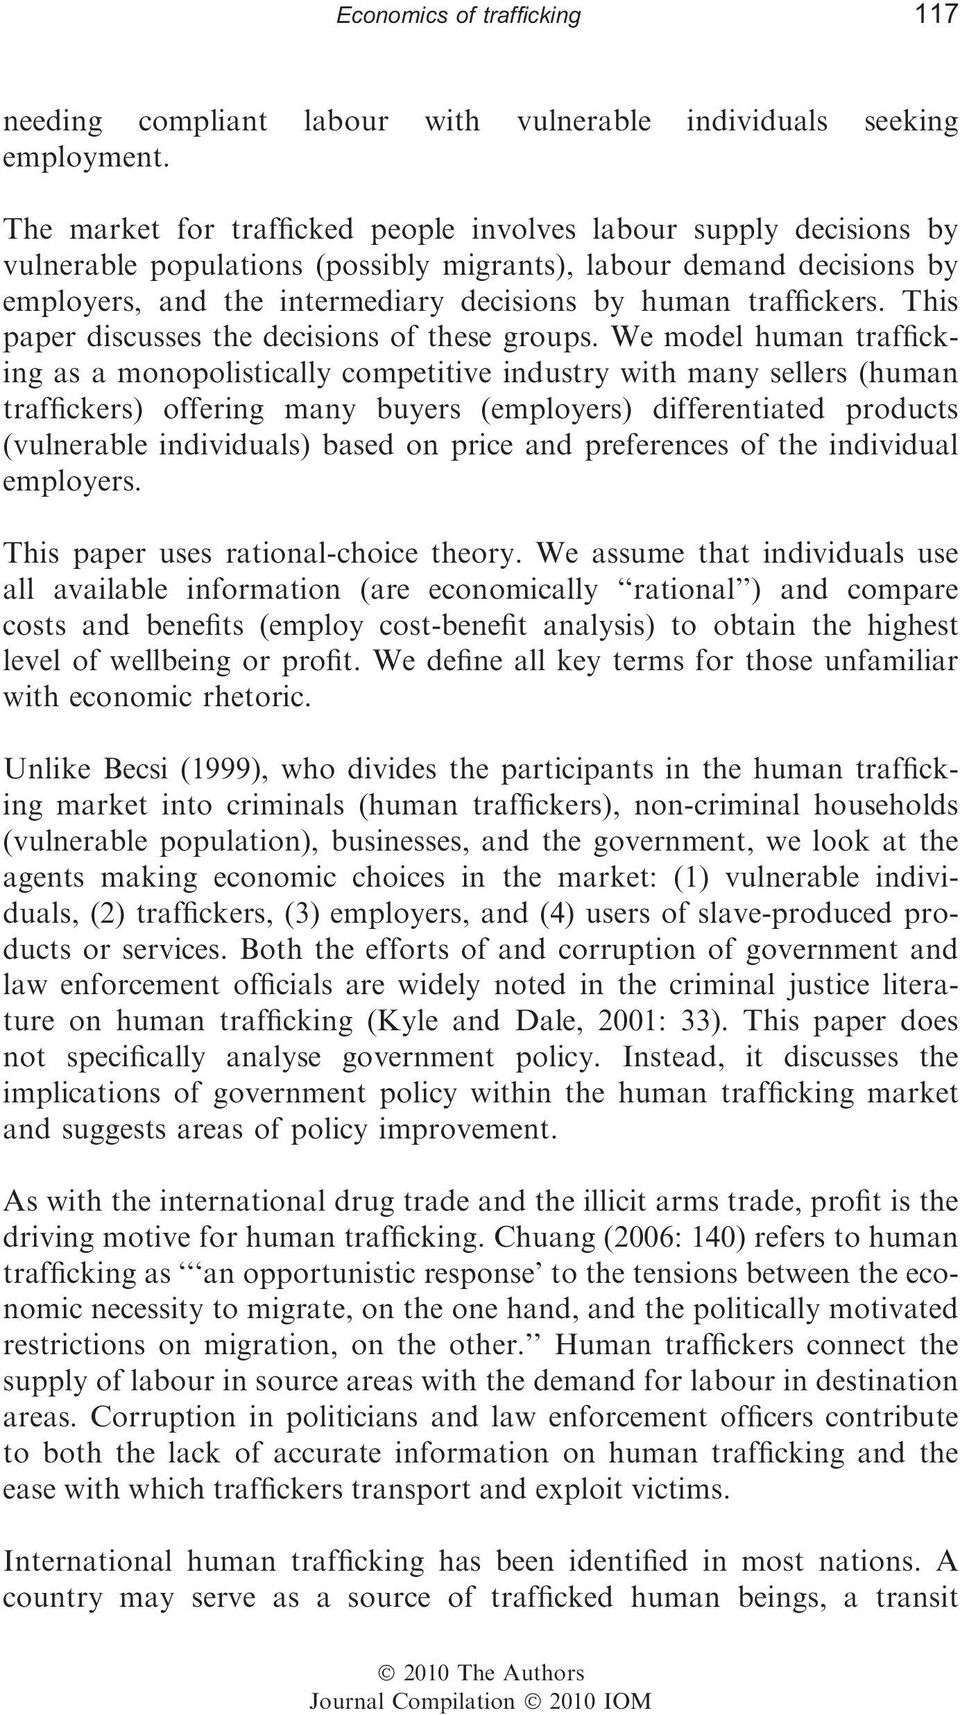 traffickers. This paper discusses the decisions of these groups.